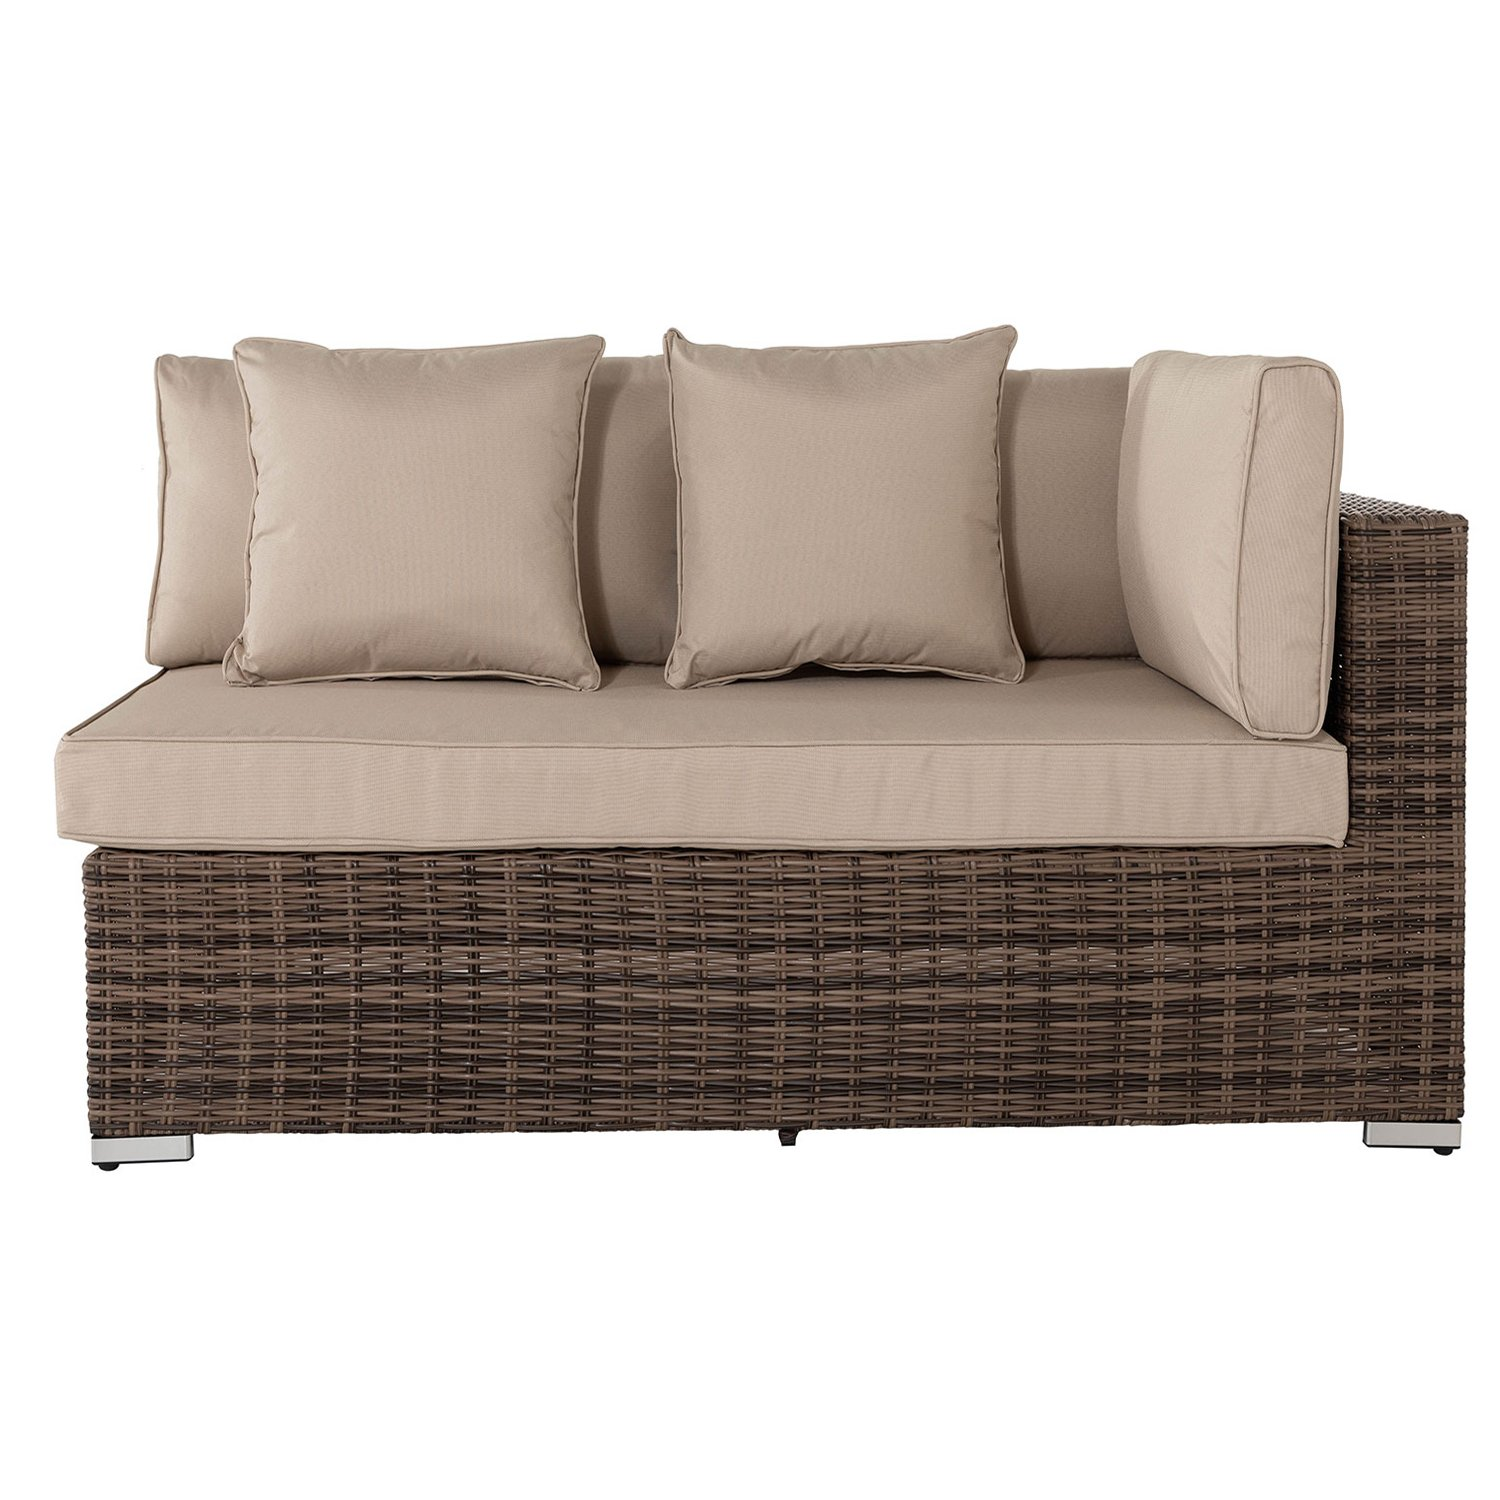 image-Monaco Rectangular Left As You Sit Rattan Garden Sofa in Premium Truffle Brown & Champagne - Premium Weave